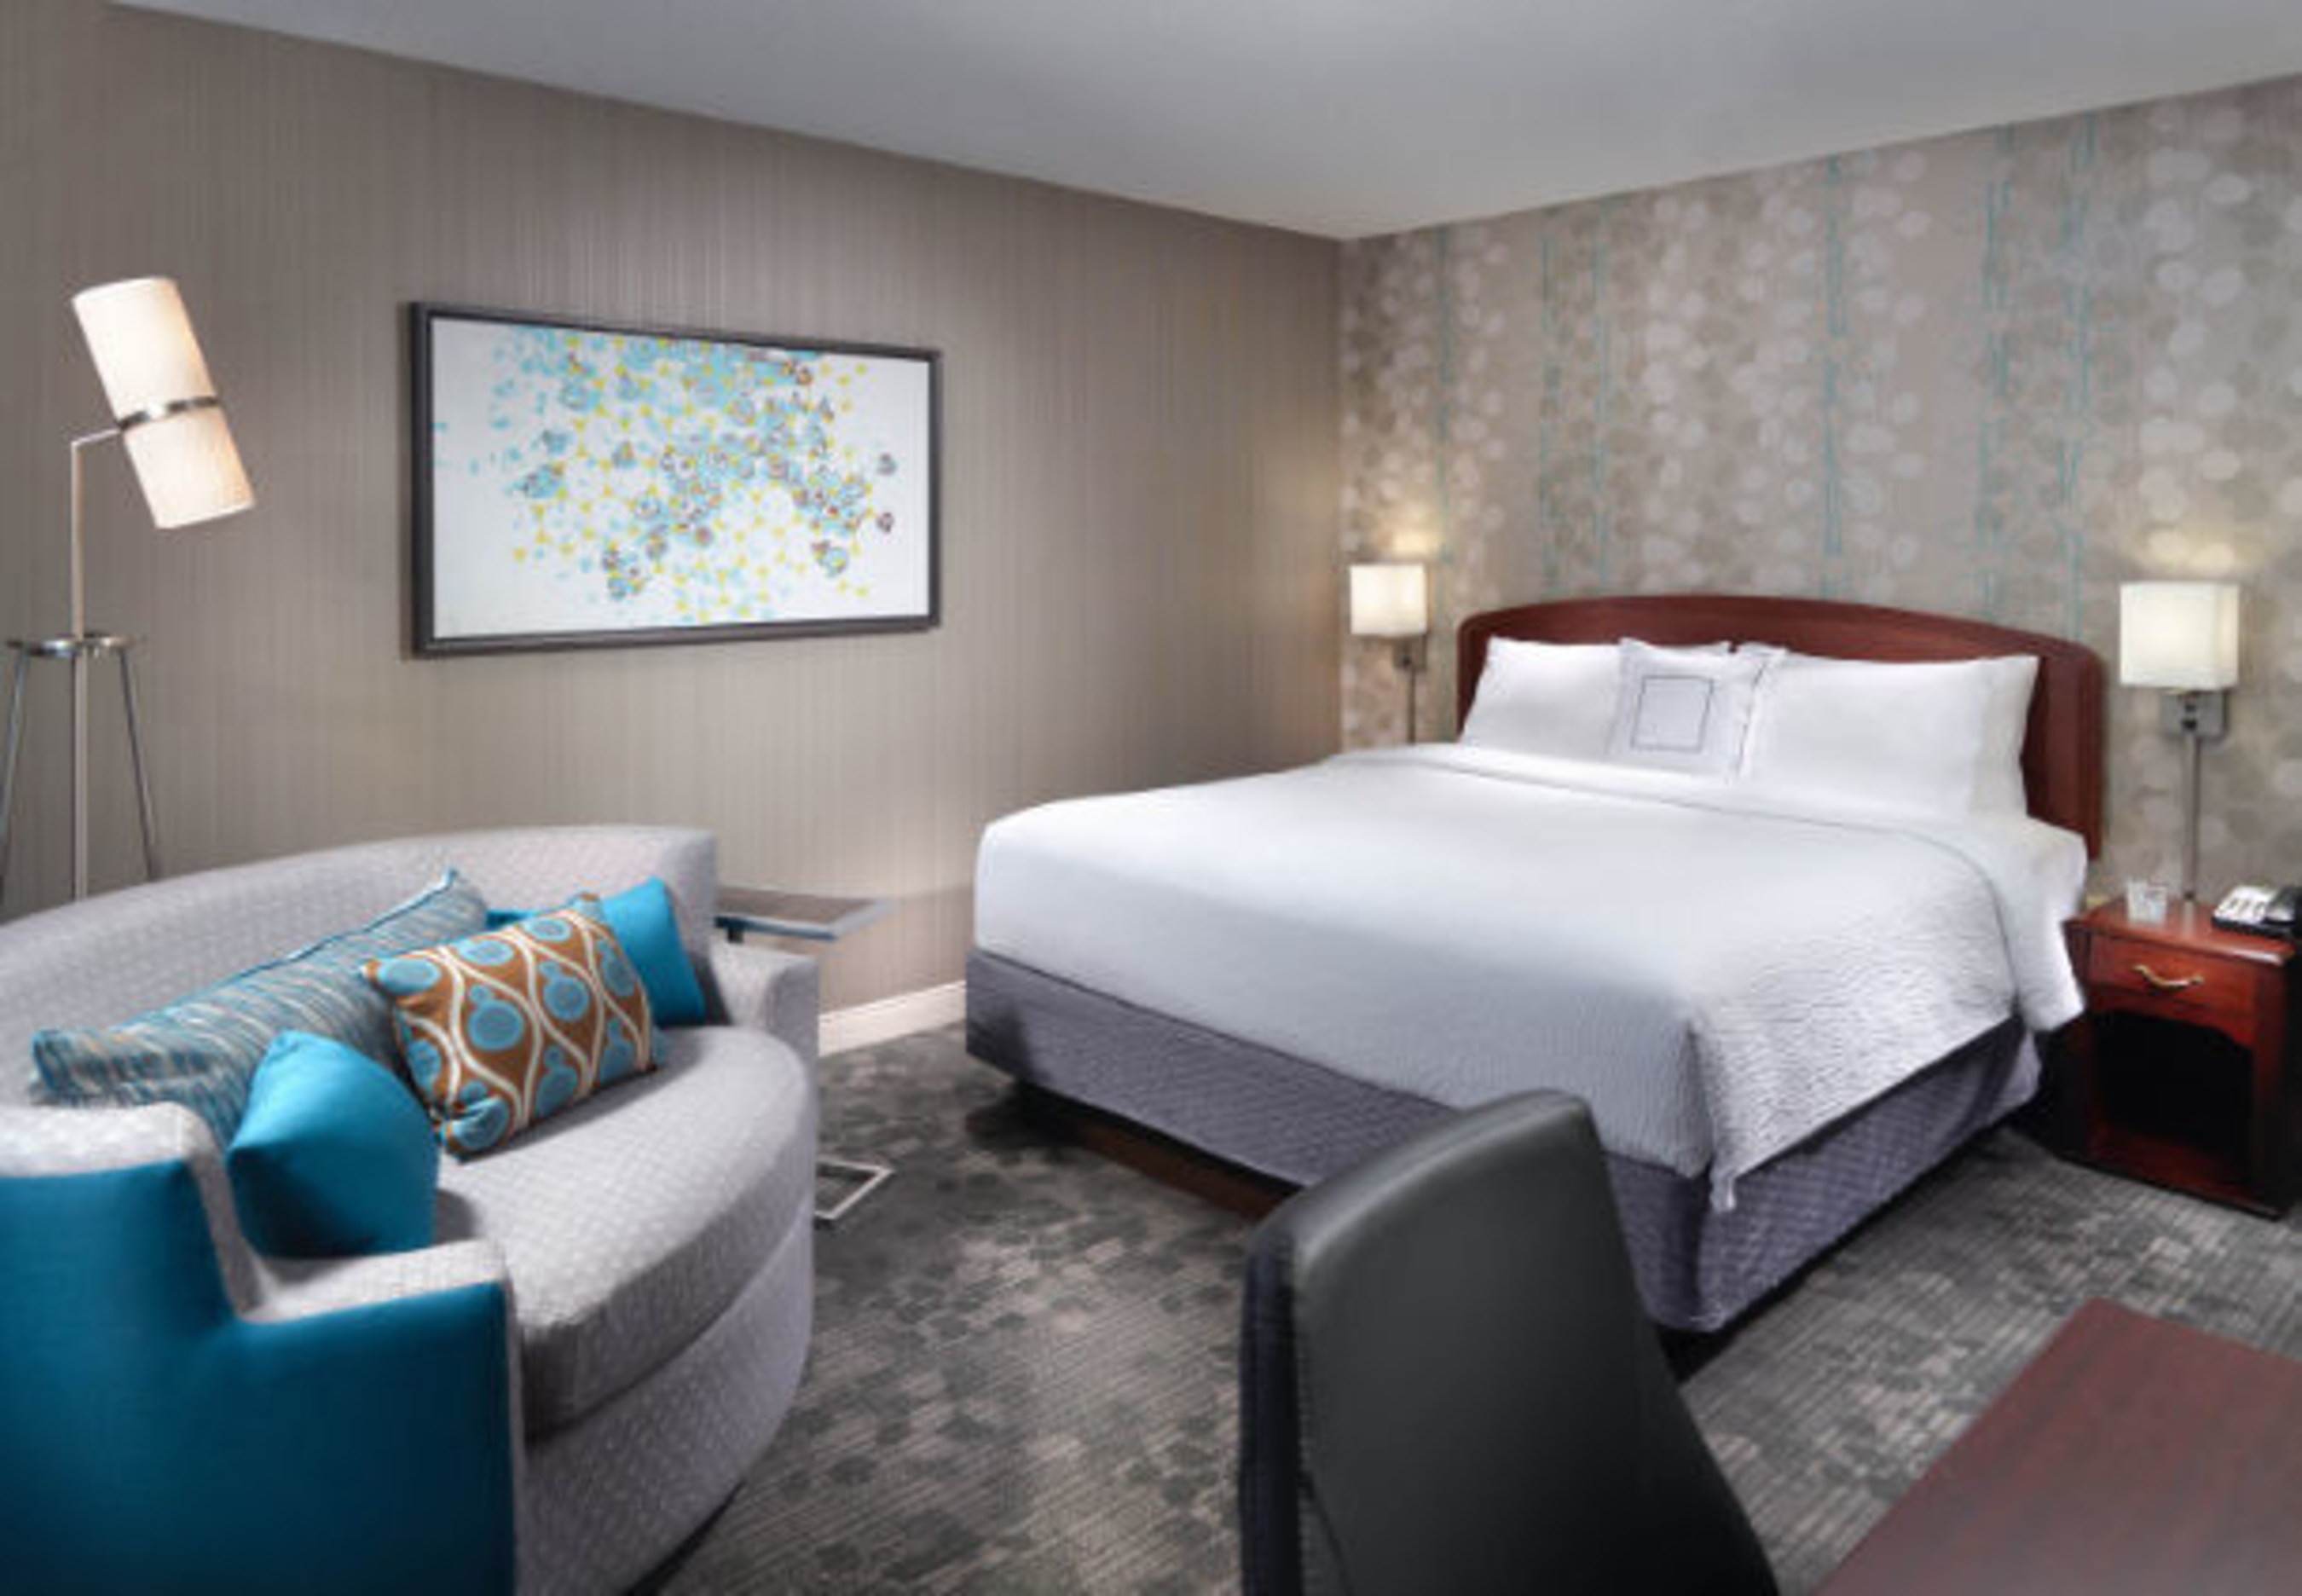 Courtyard Atlanta Alpharetta is offering its special Shopping Worth Bragging About! Package that includes accommodations starting at $104 per night plus a $25 American Express gift card. The deal also includes breakfast for two at The Bistro - Eat. Drink. Connect. For information, visit www.AlpharettaCourtyard.com or call 1-678-366-3360.